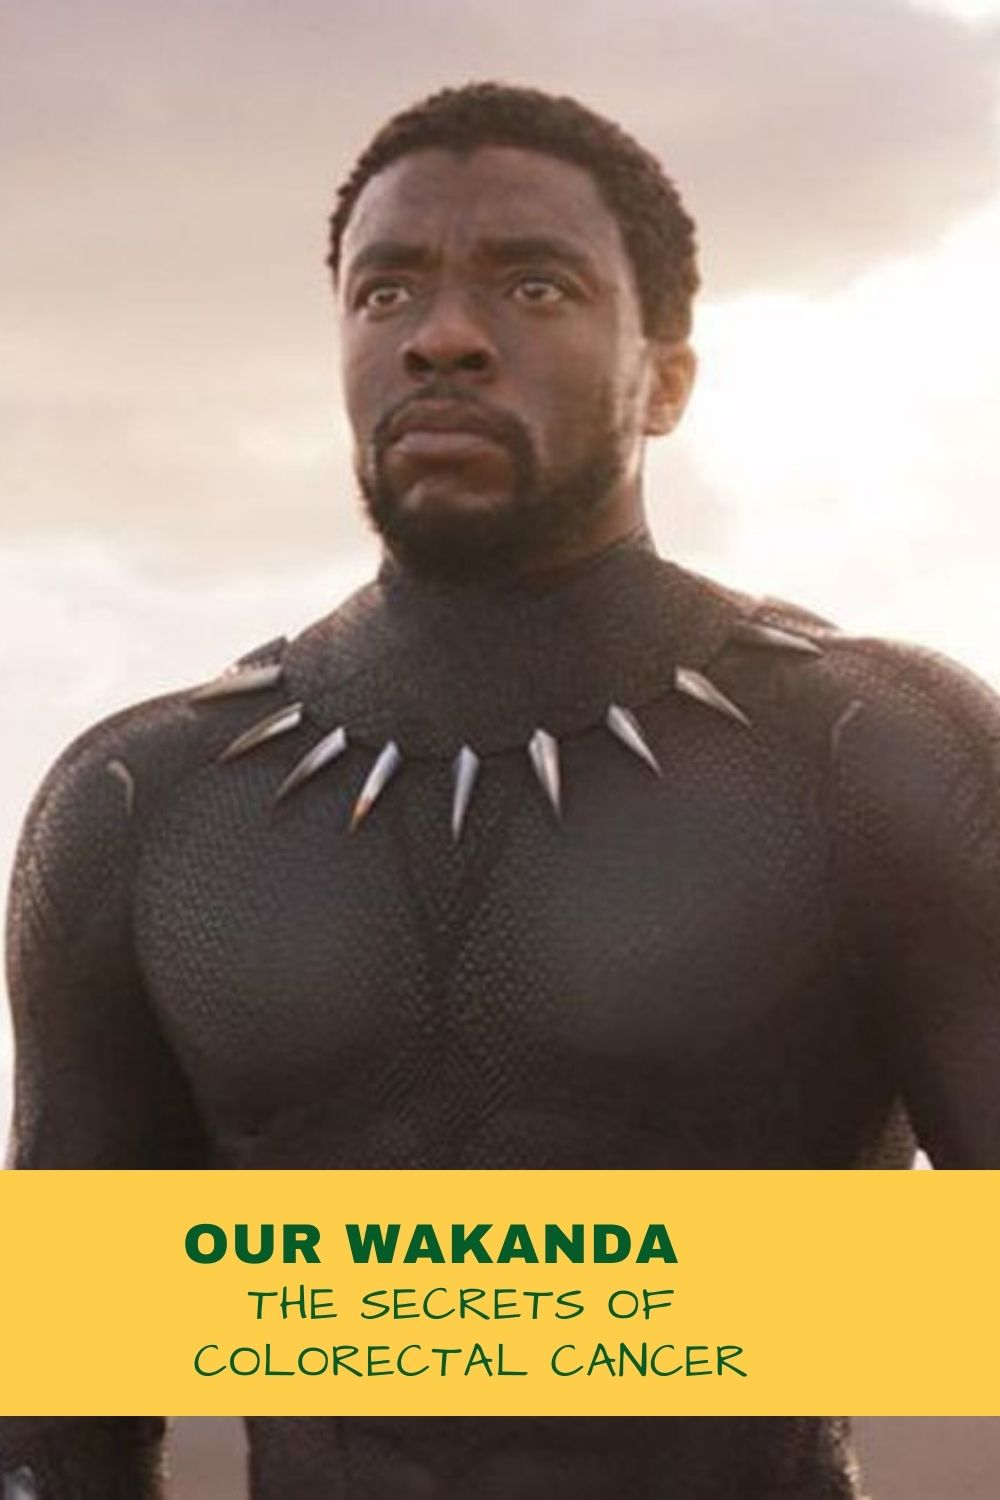 Our Wakanda: Colorectal Cancer and Secrecy